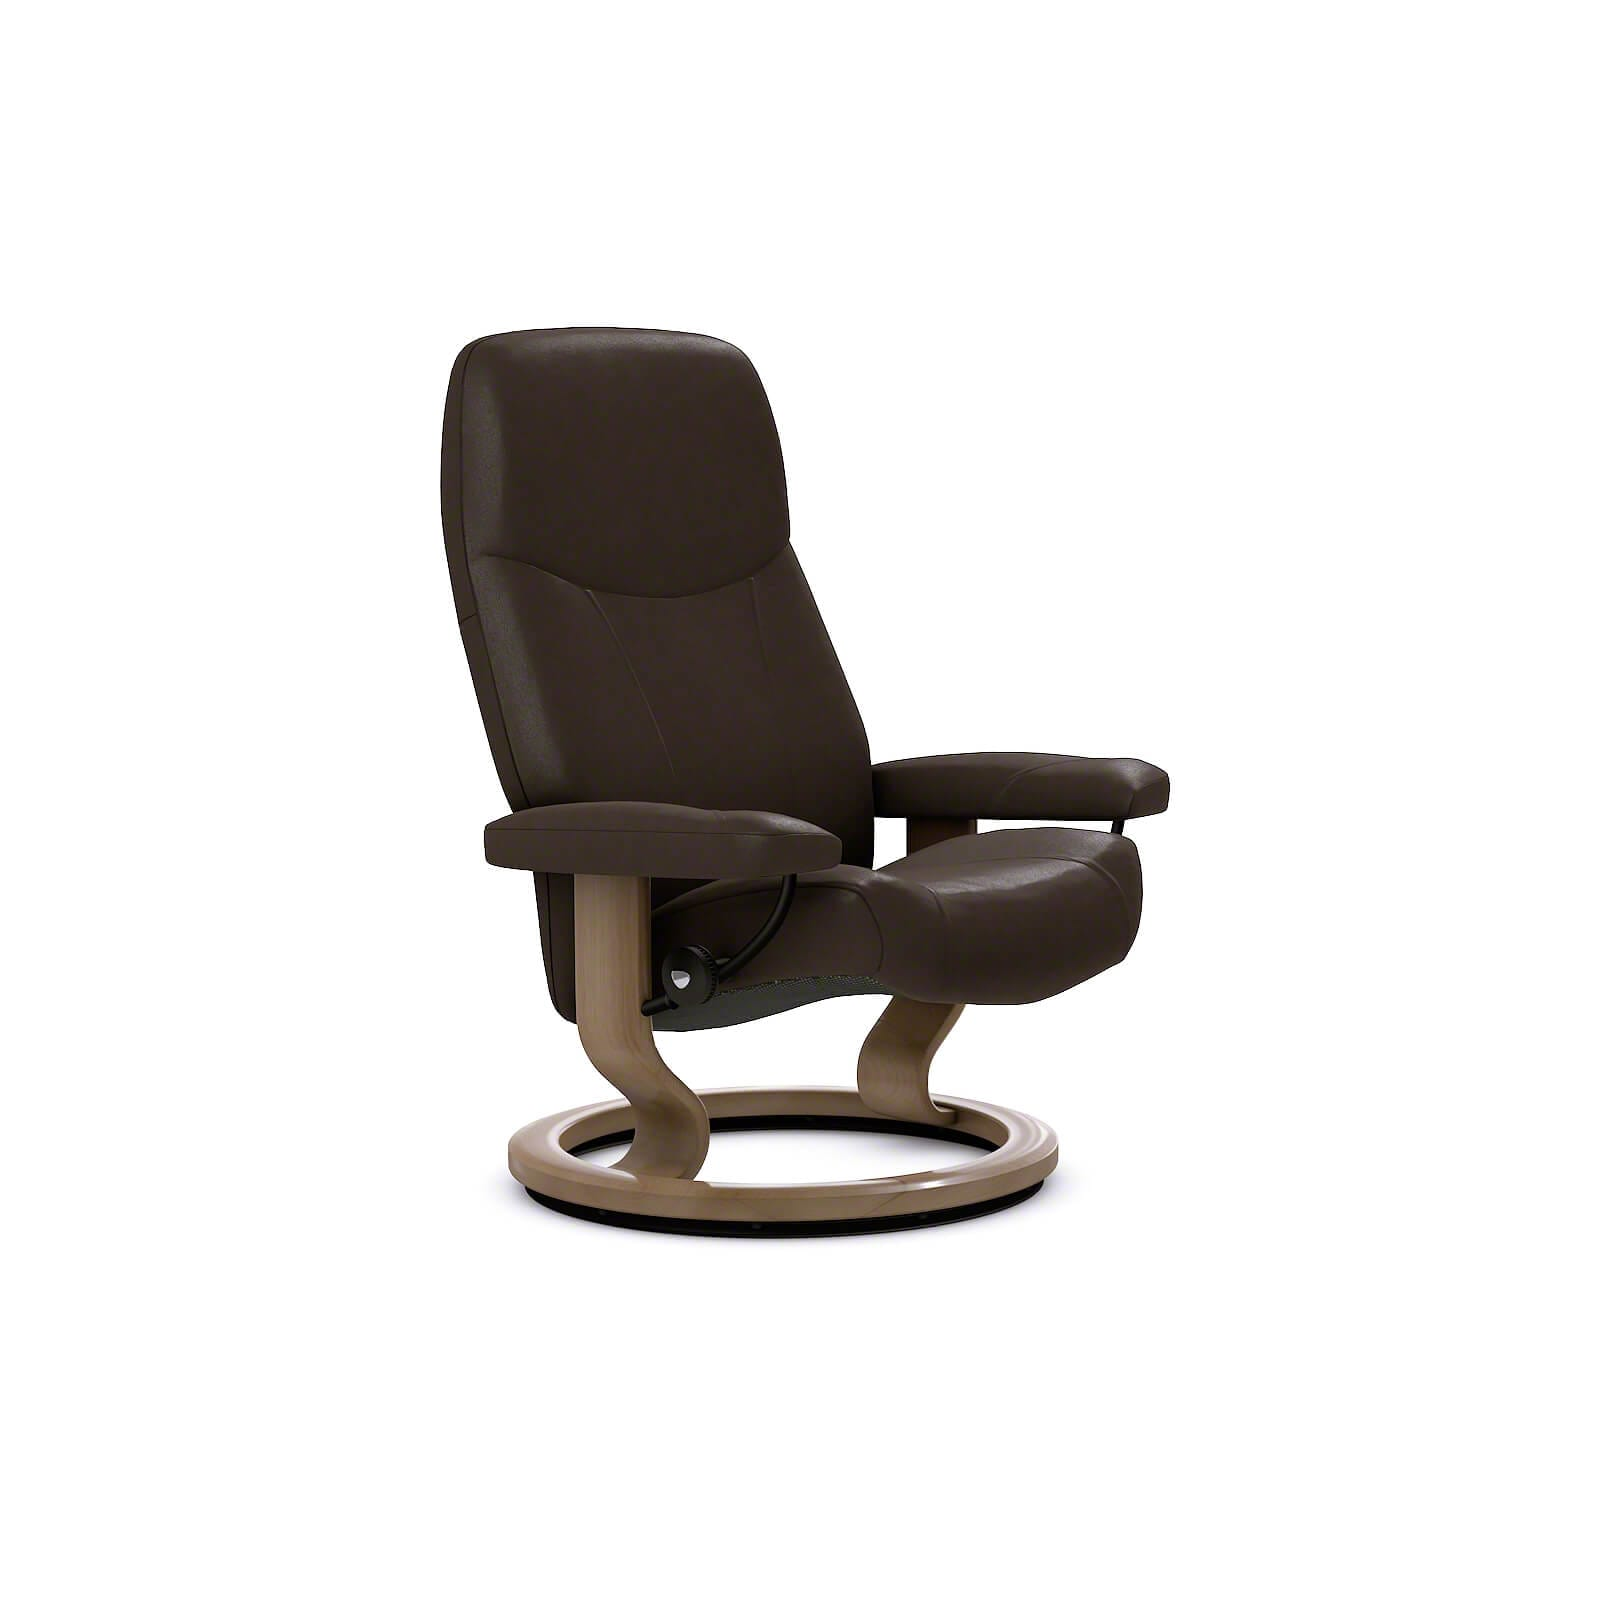 Stressless Sessel Mit Hocker Stressless Sessel Ohne Hocker